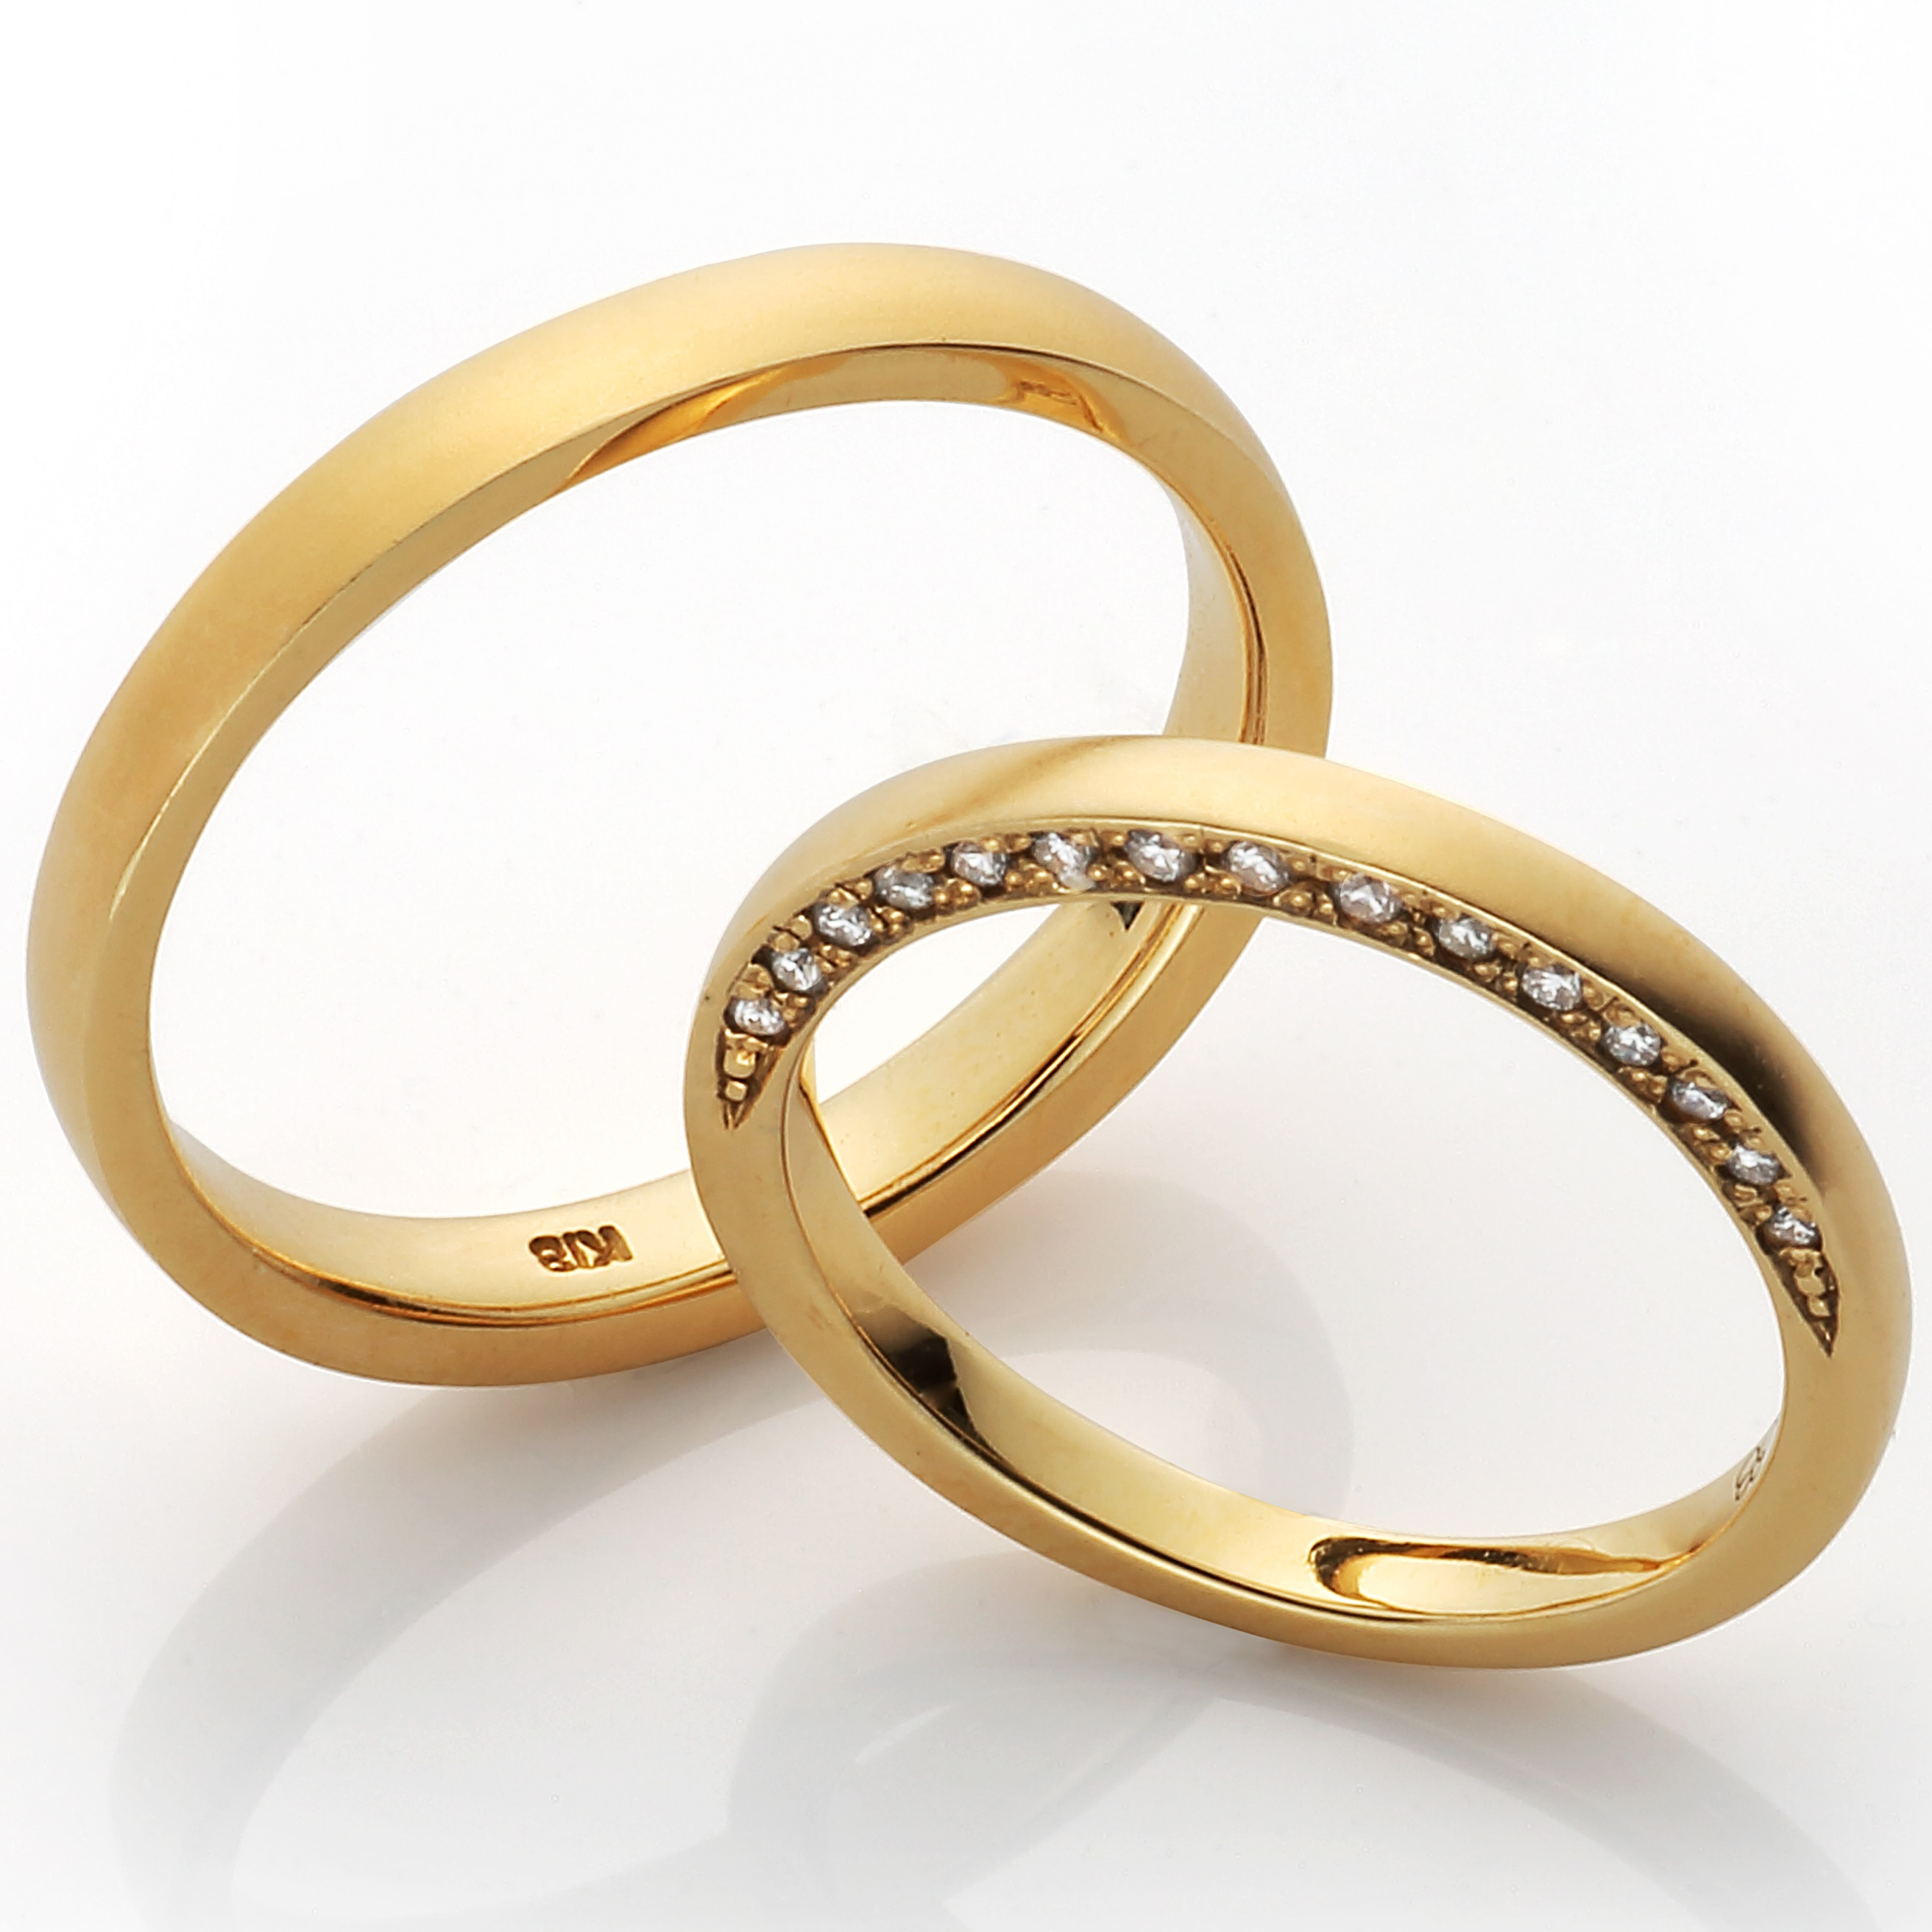 rings your wedding bands unique ring ideas plain gold band